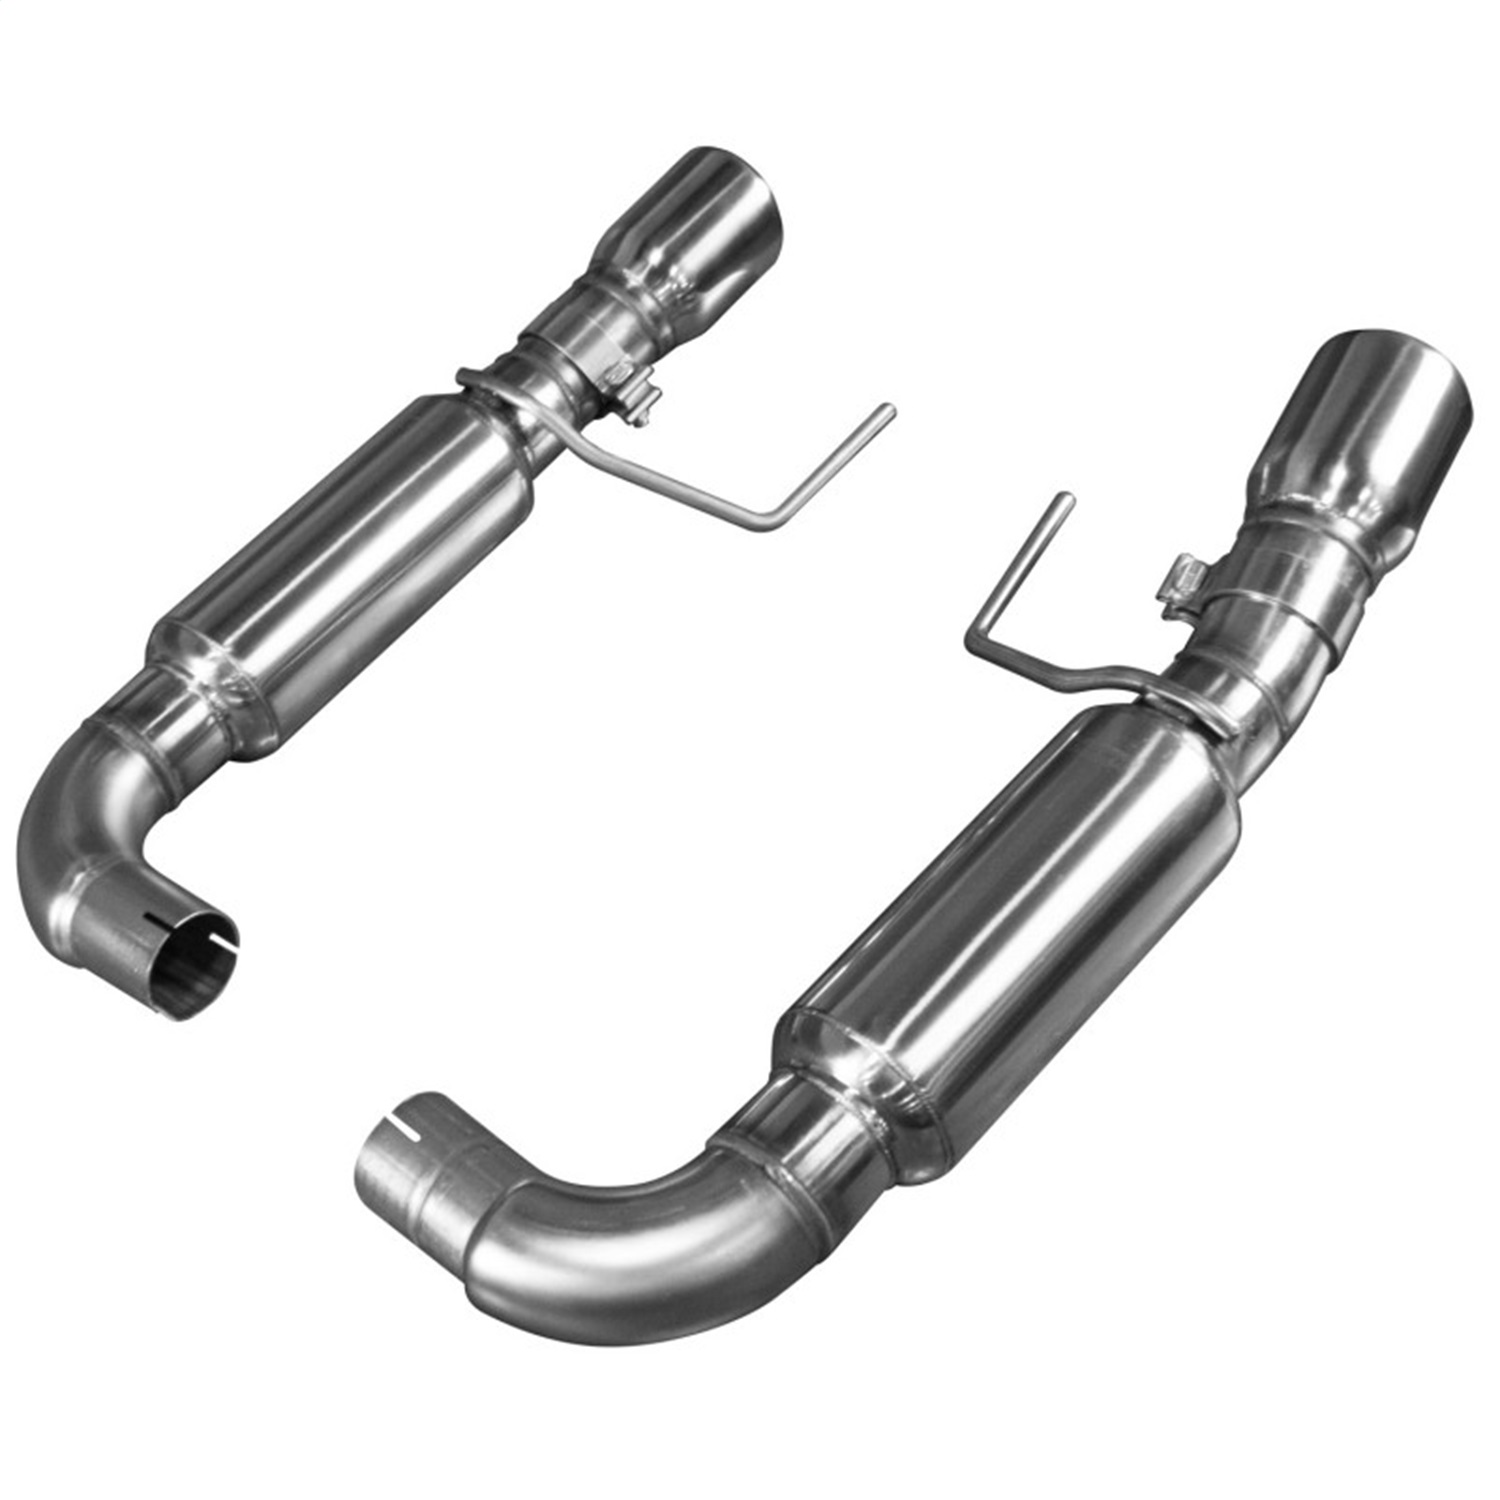 Kooks Custom Headers 11516200 Axle Back Exhaust System Fits 15 Mustang